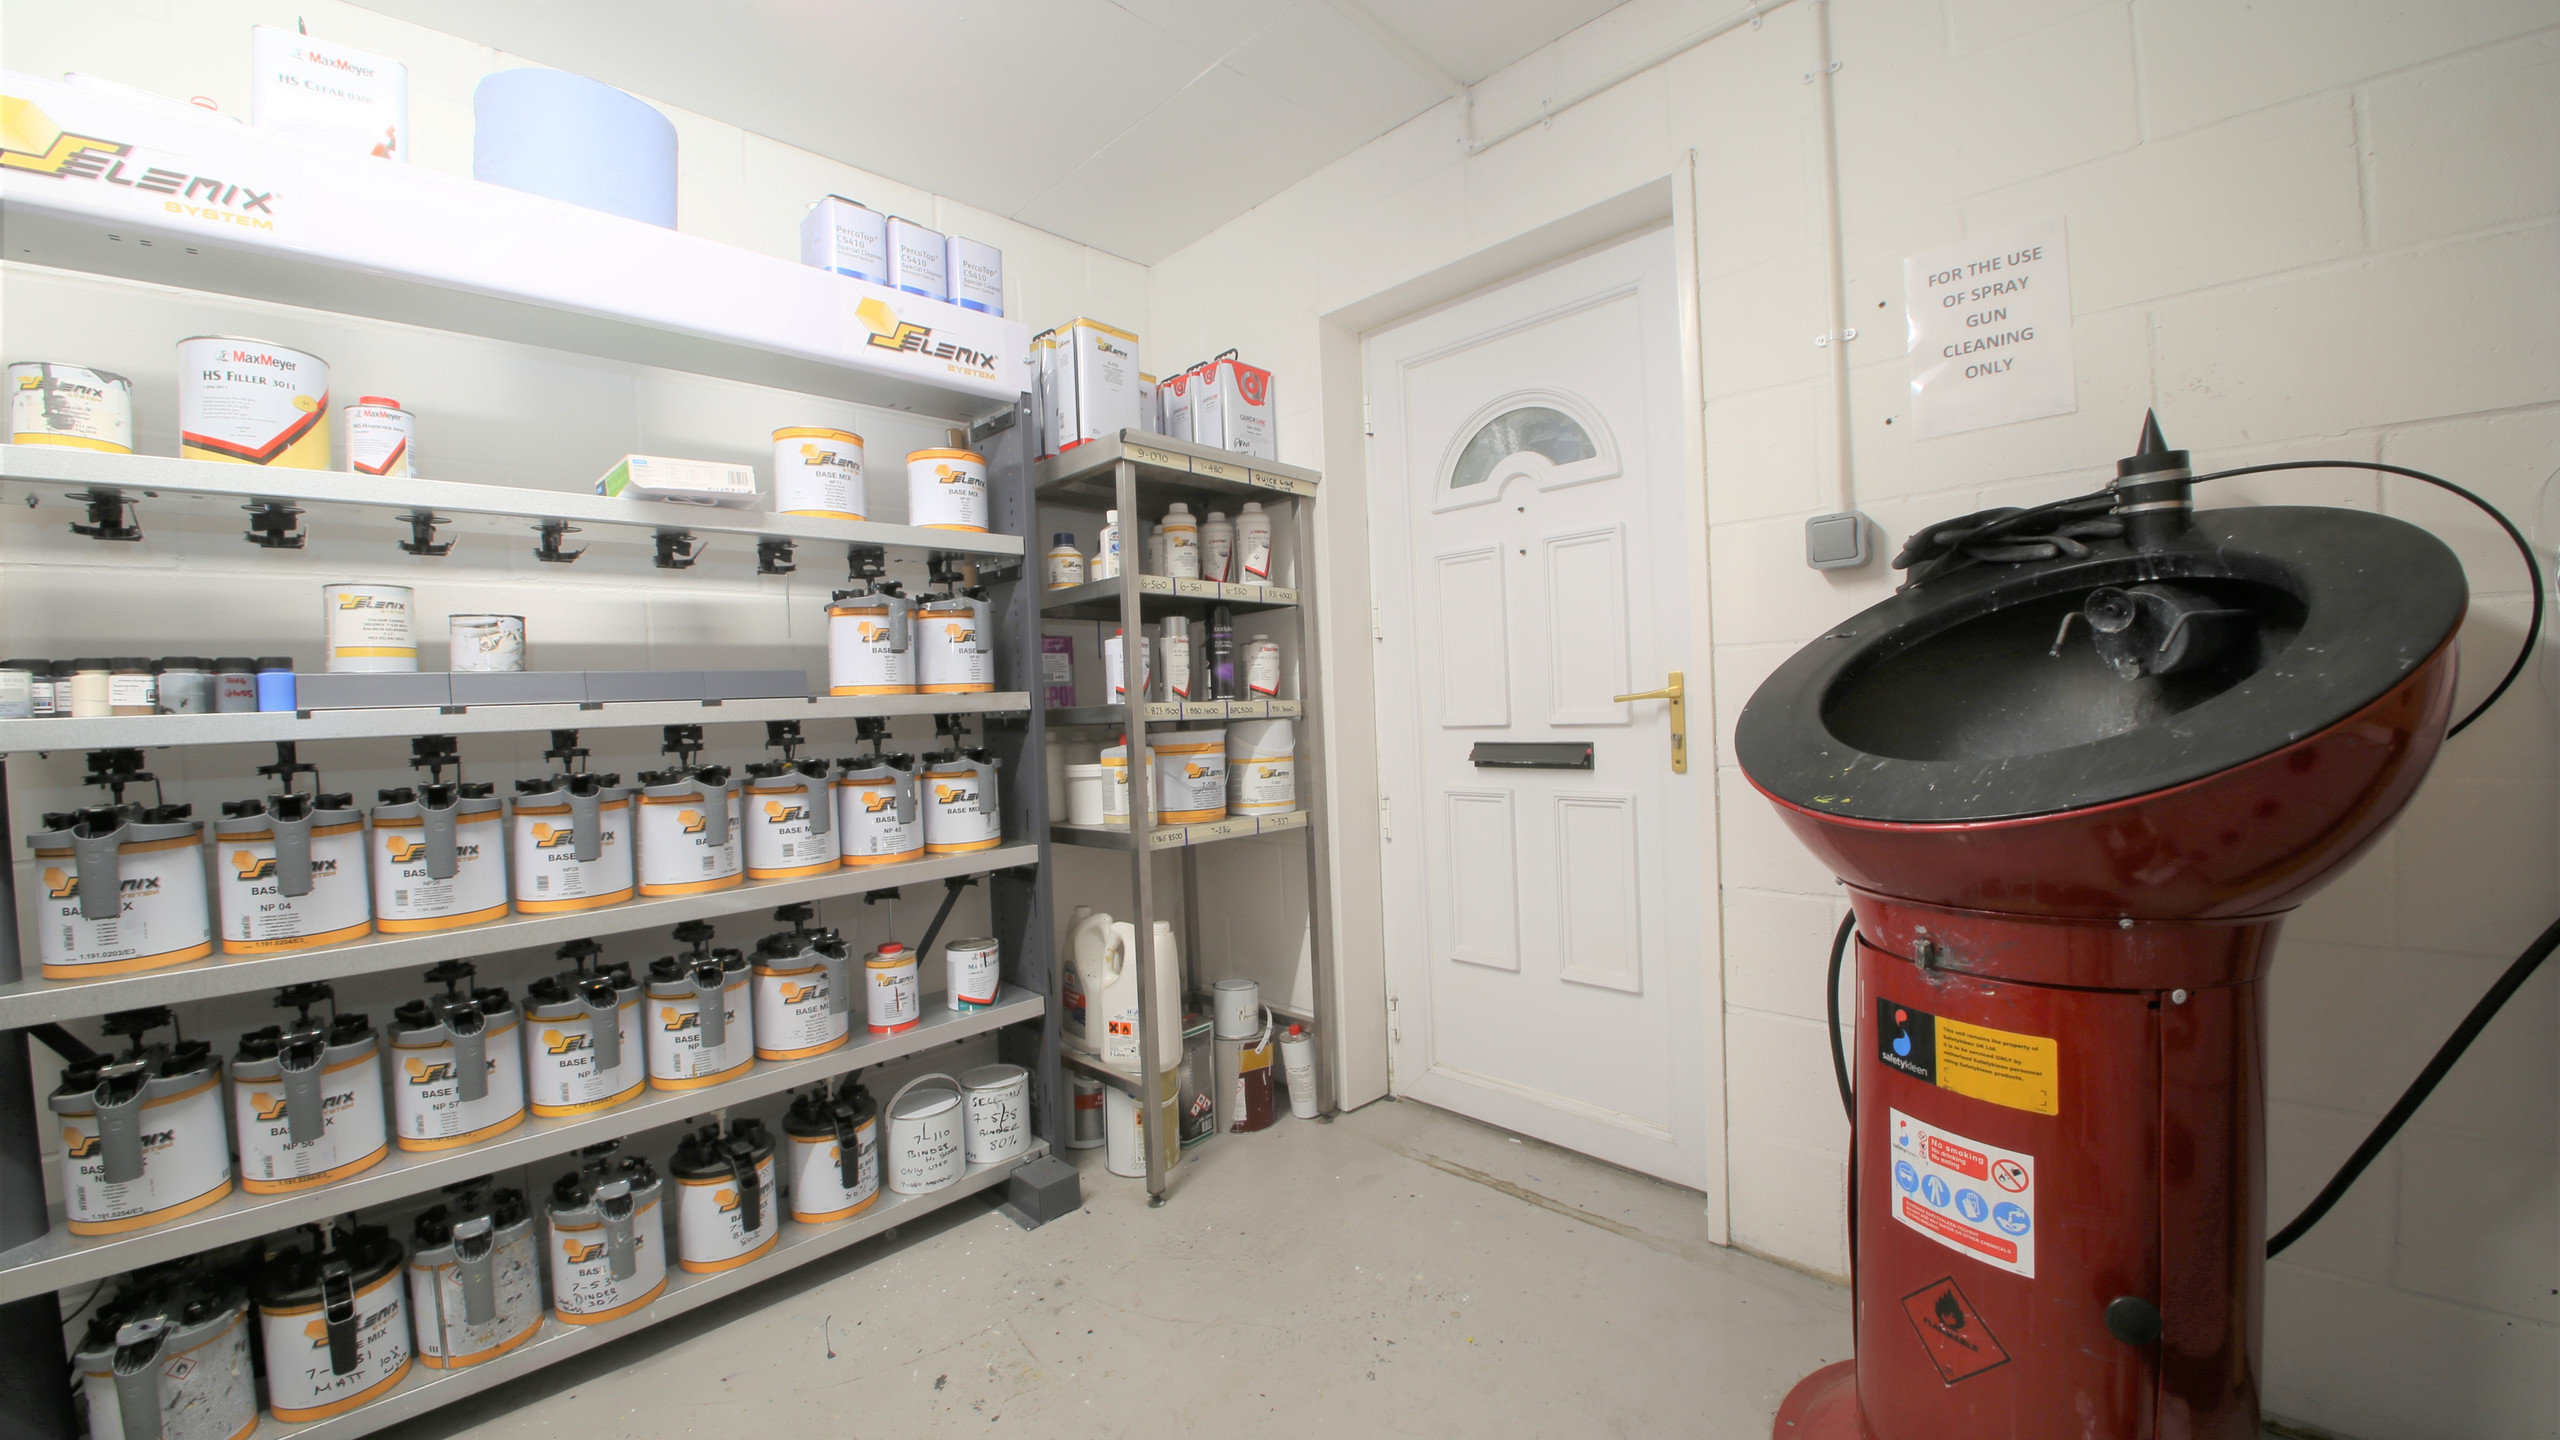 Paint room, mixing room